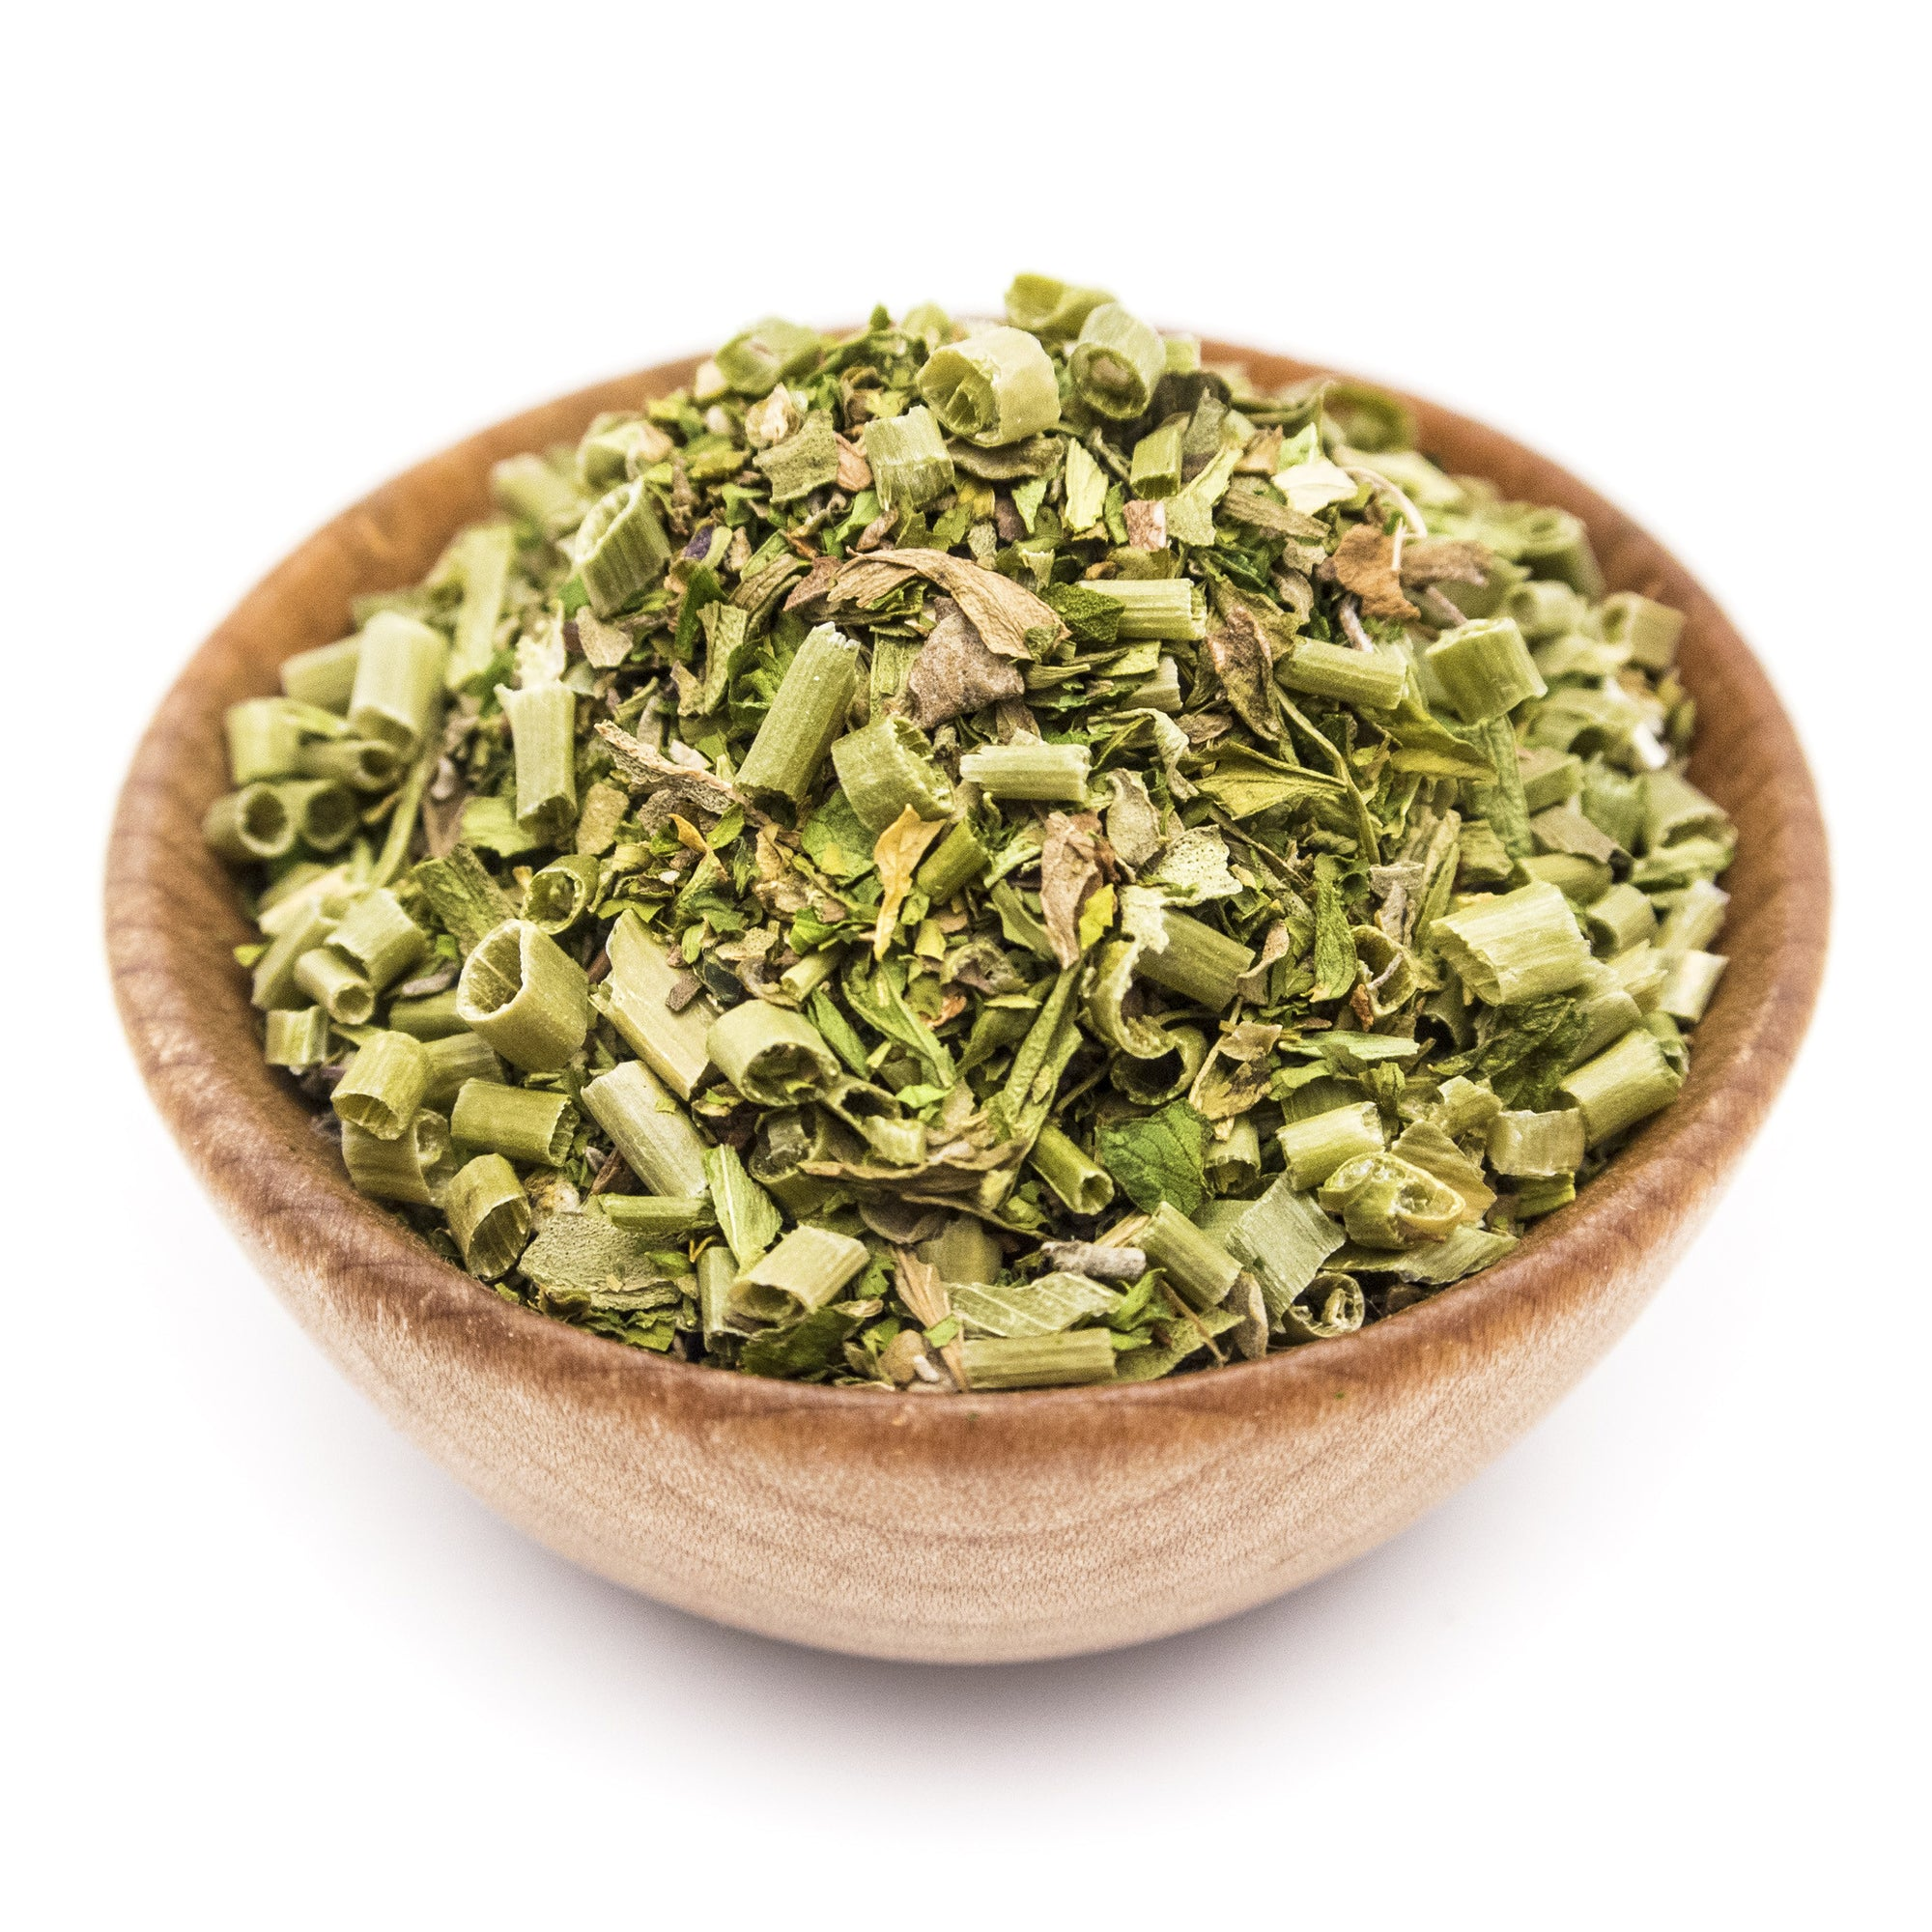 Fines Herbes - Salt Free - Spice Blends - Red Stick Spice Company